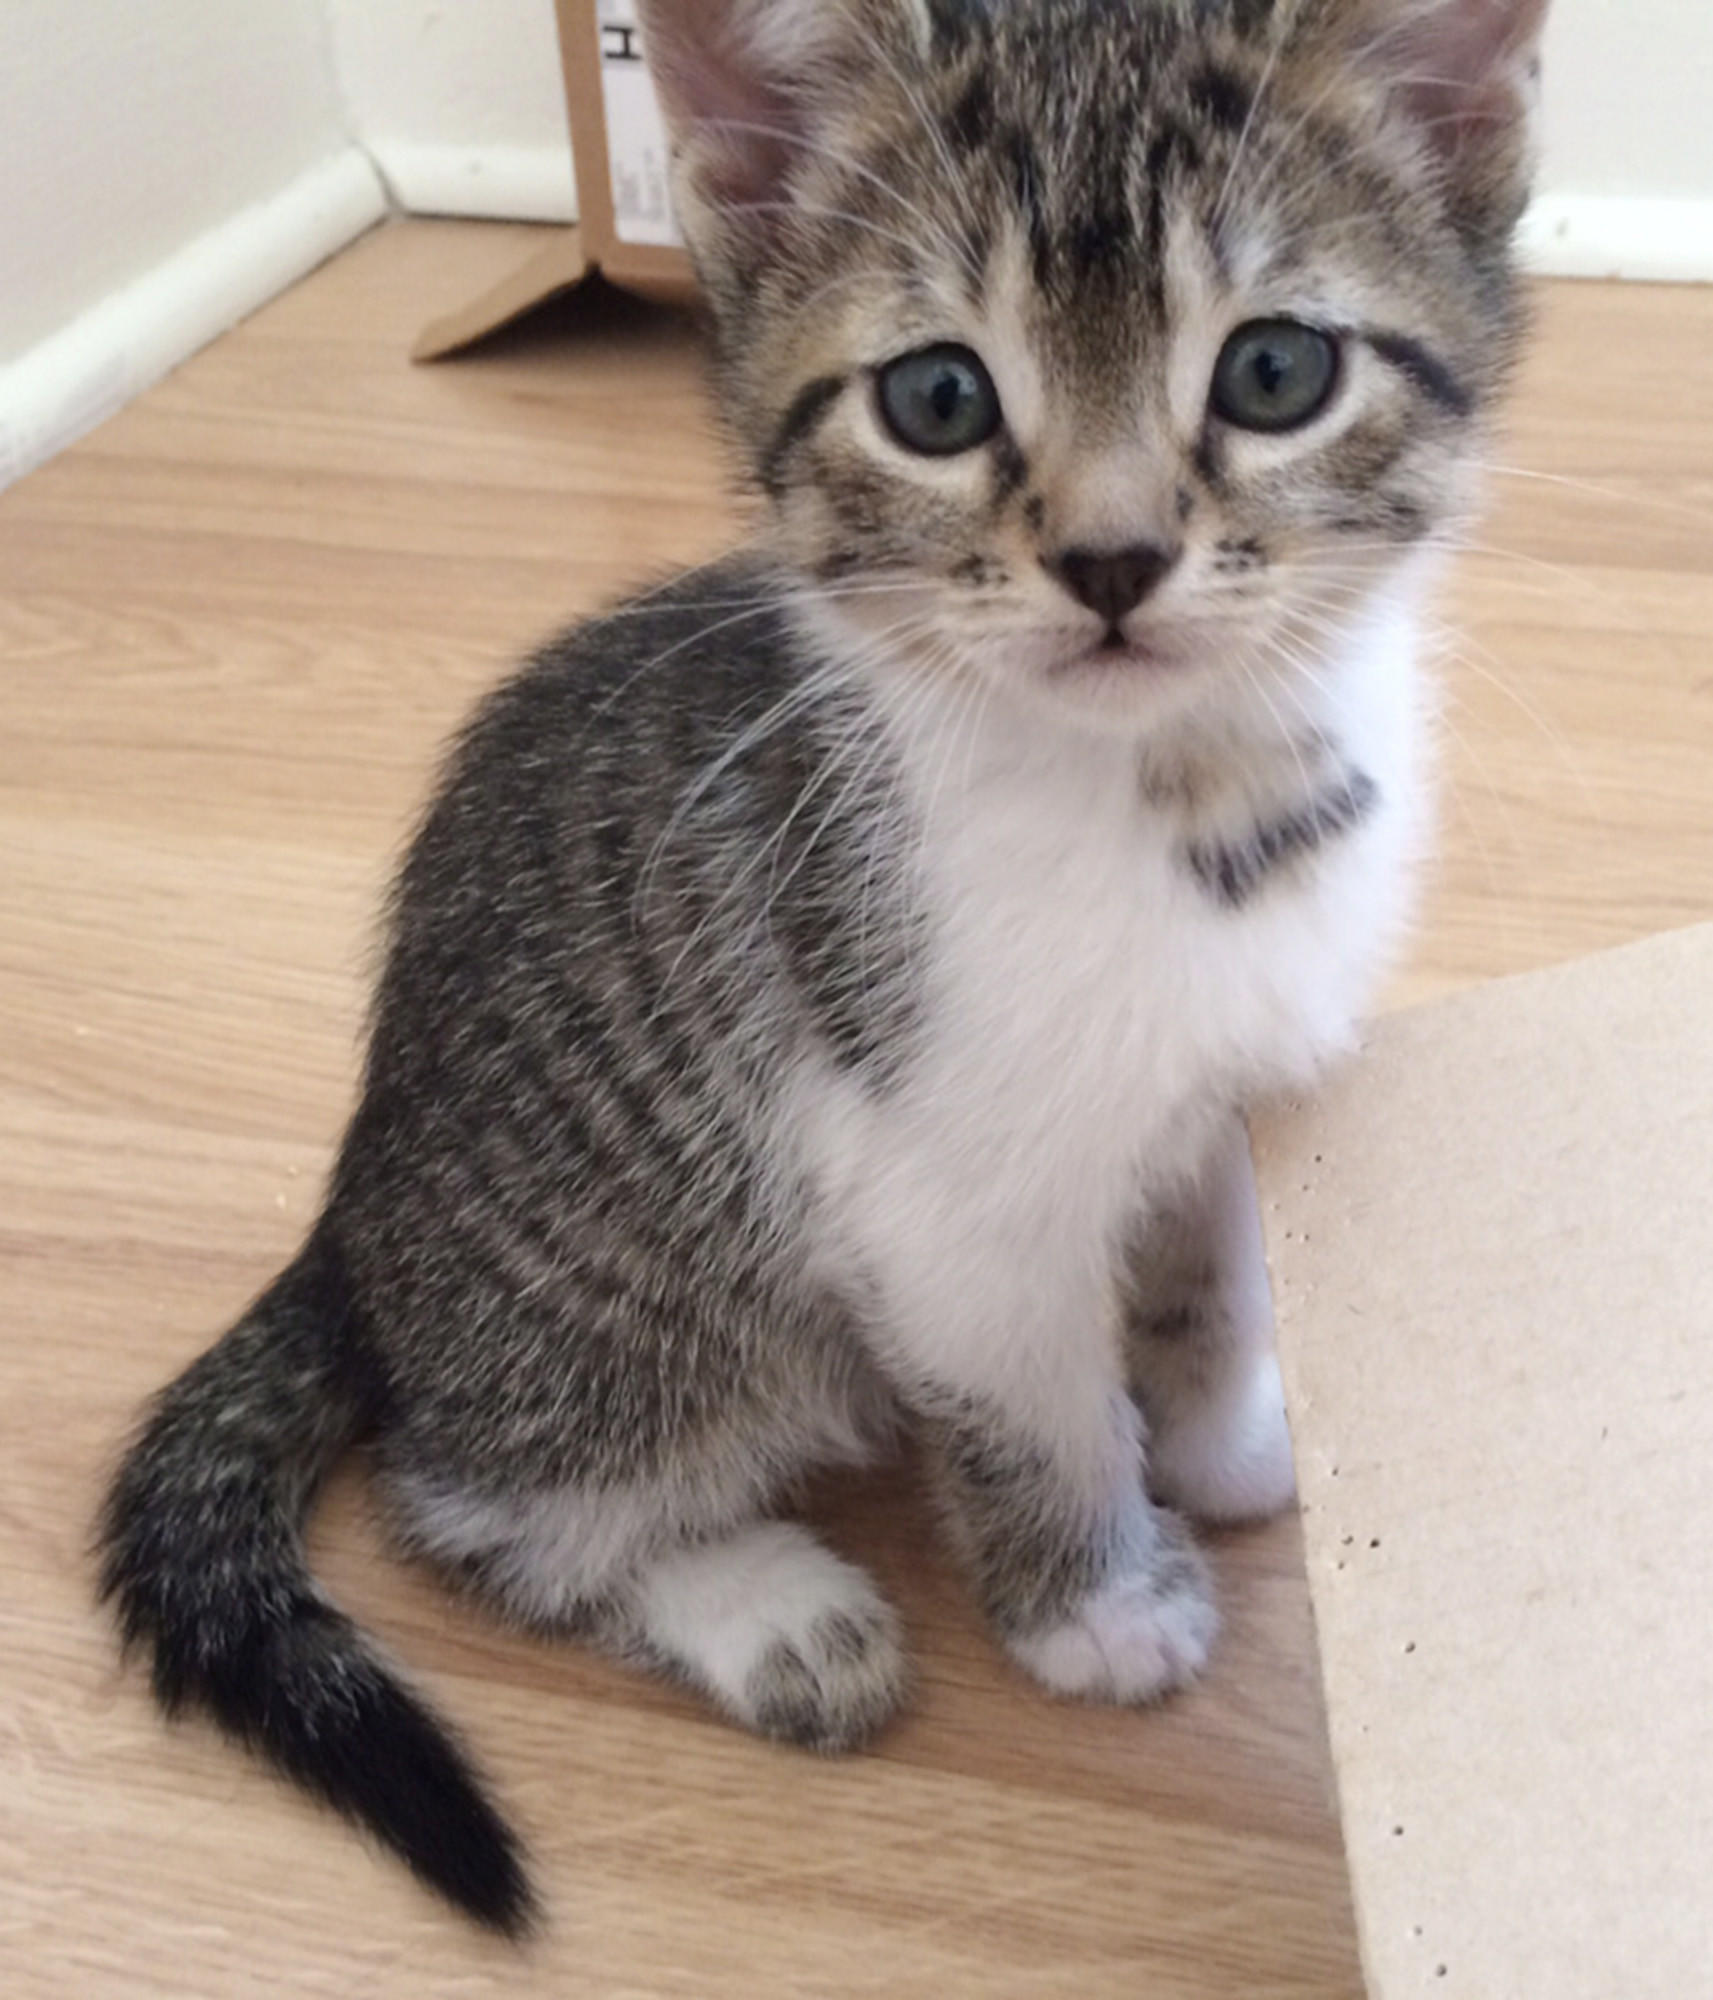 Claudette is a two-month-old brown tabby kitten up for adoption.